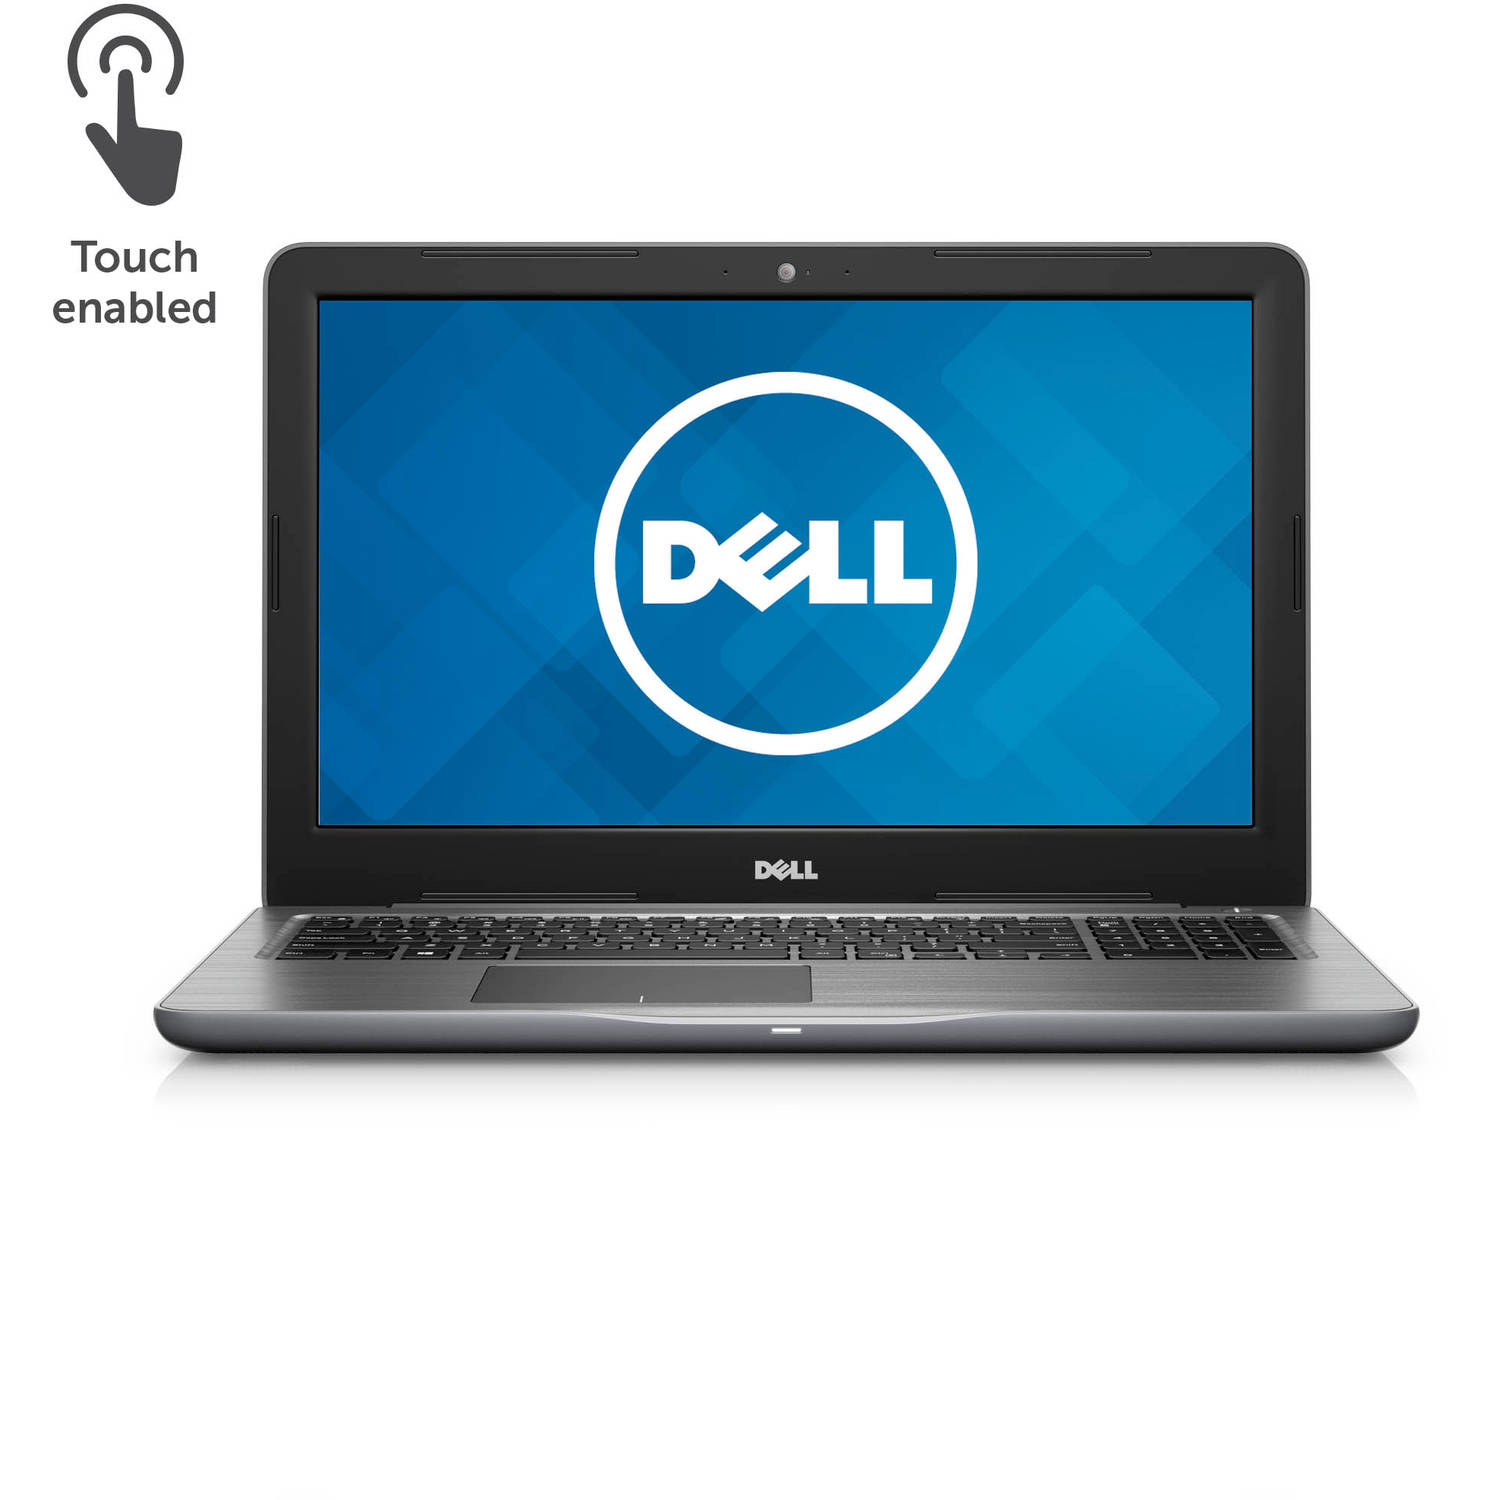 "Dell - Inspiron 15.6"" Touch-Screen Laptop - AMD FX - 16GB Memory - AMD Radeon R7 M445 - 1TB HD - Matte gray"